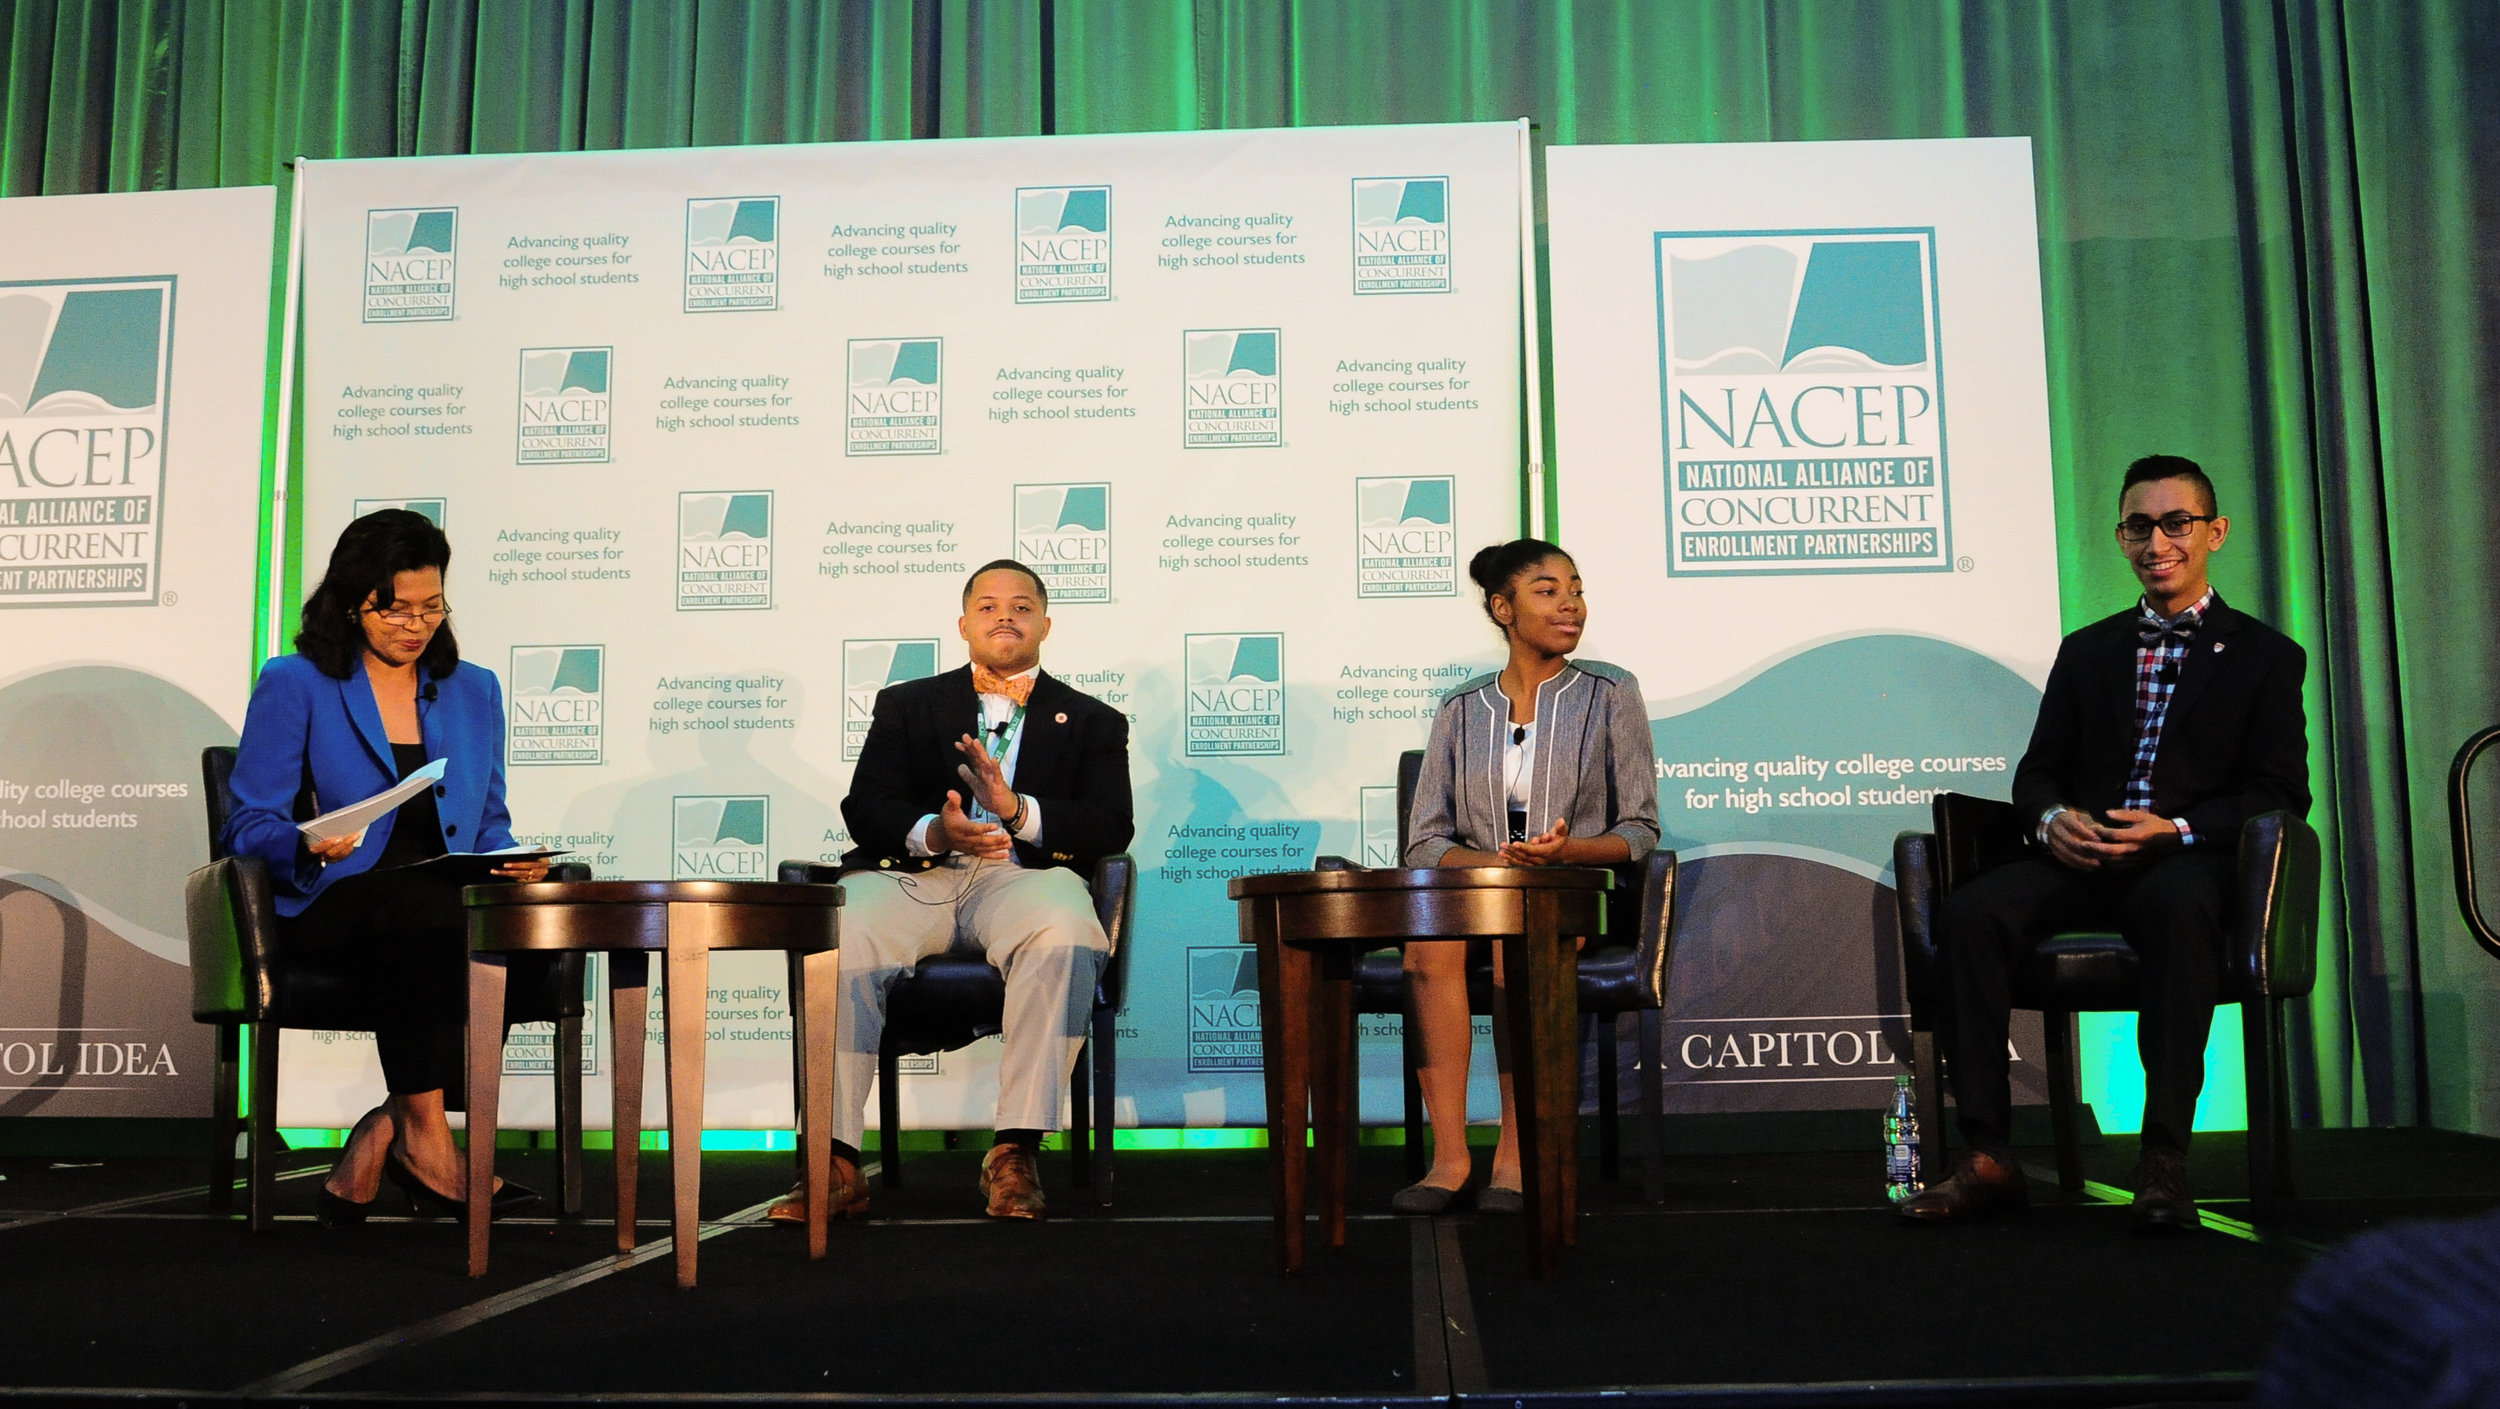 NACEP 2017 Conference